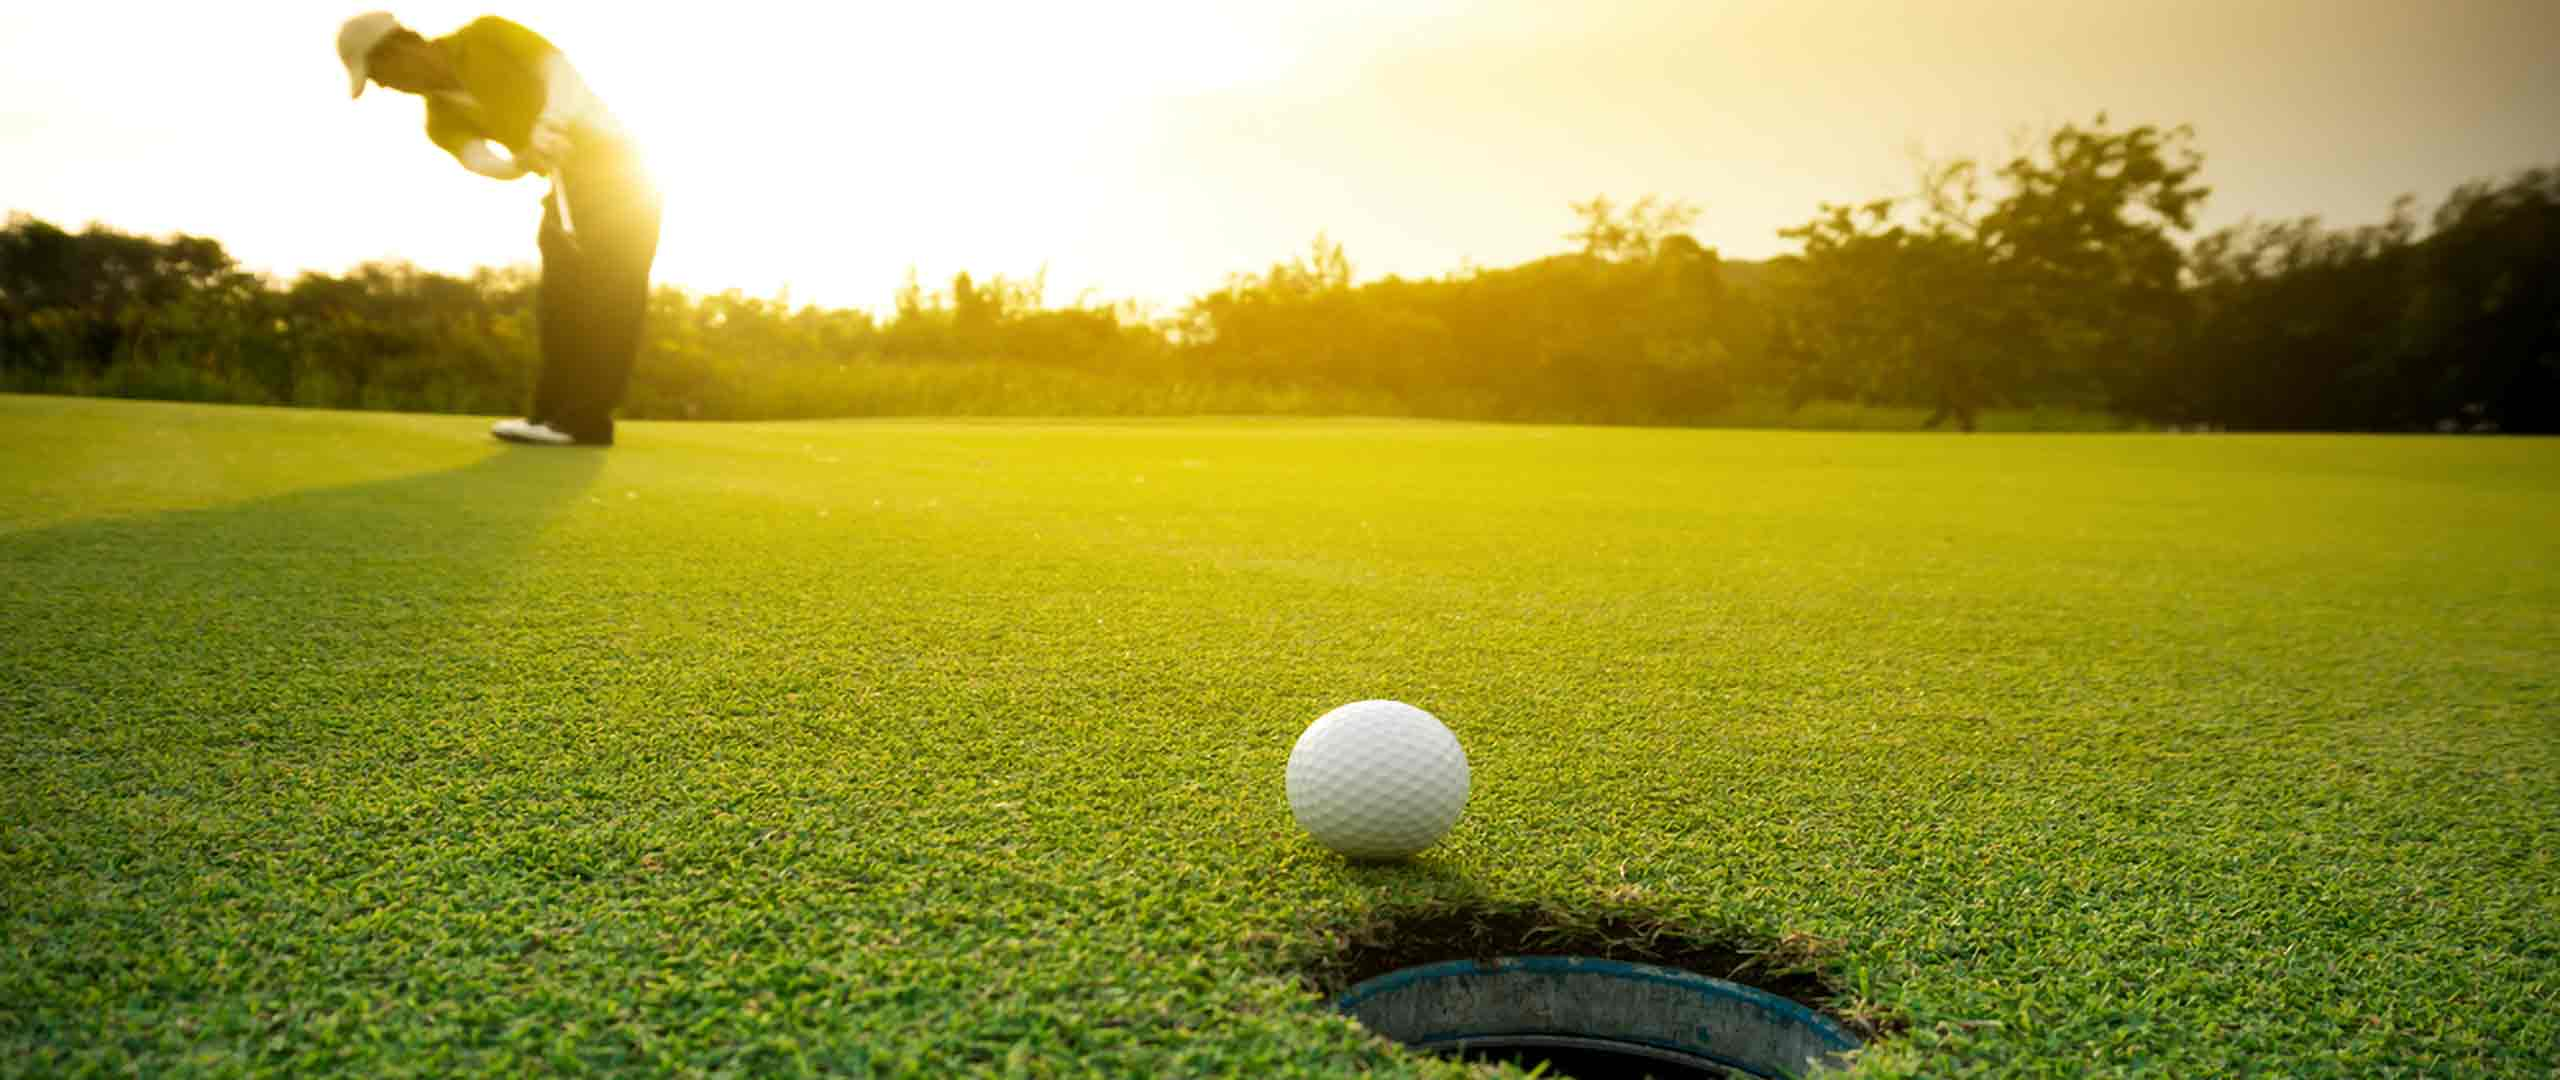 A Hole in One for the RASA and Fedhasa Golf Day